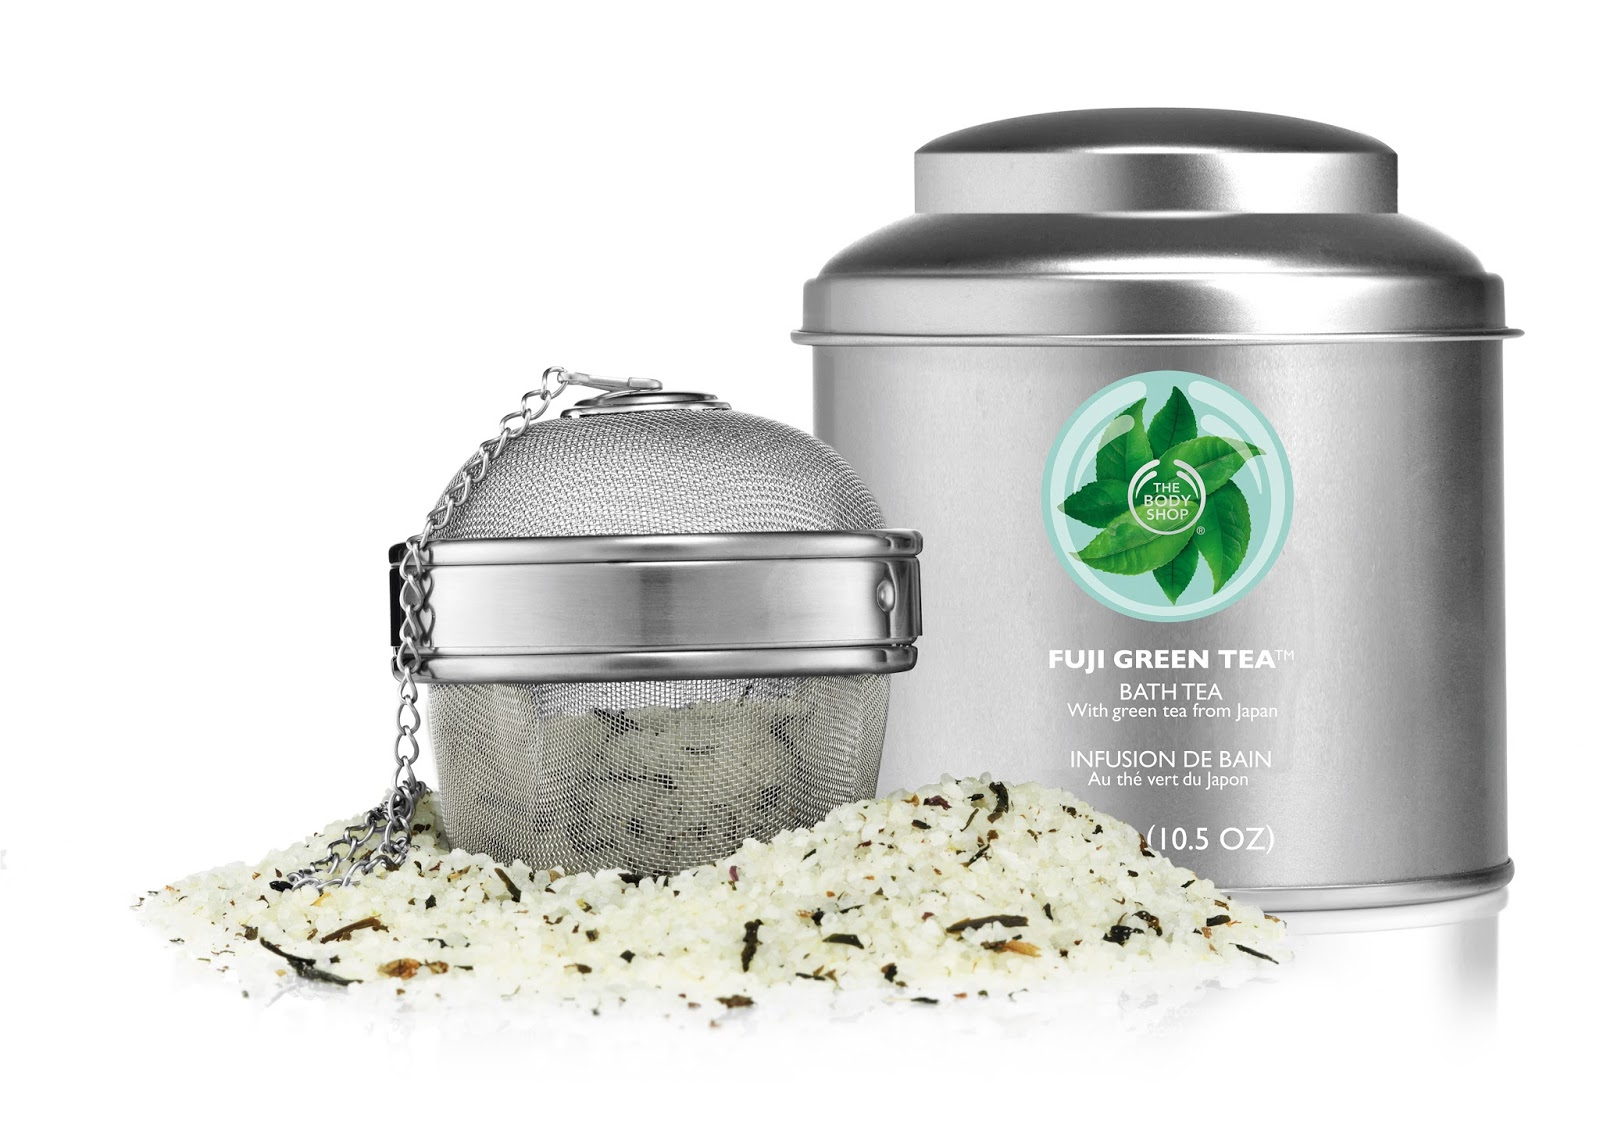 The Body Shop Fuji Green Tea Bath Tea and Infuser